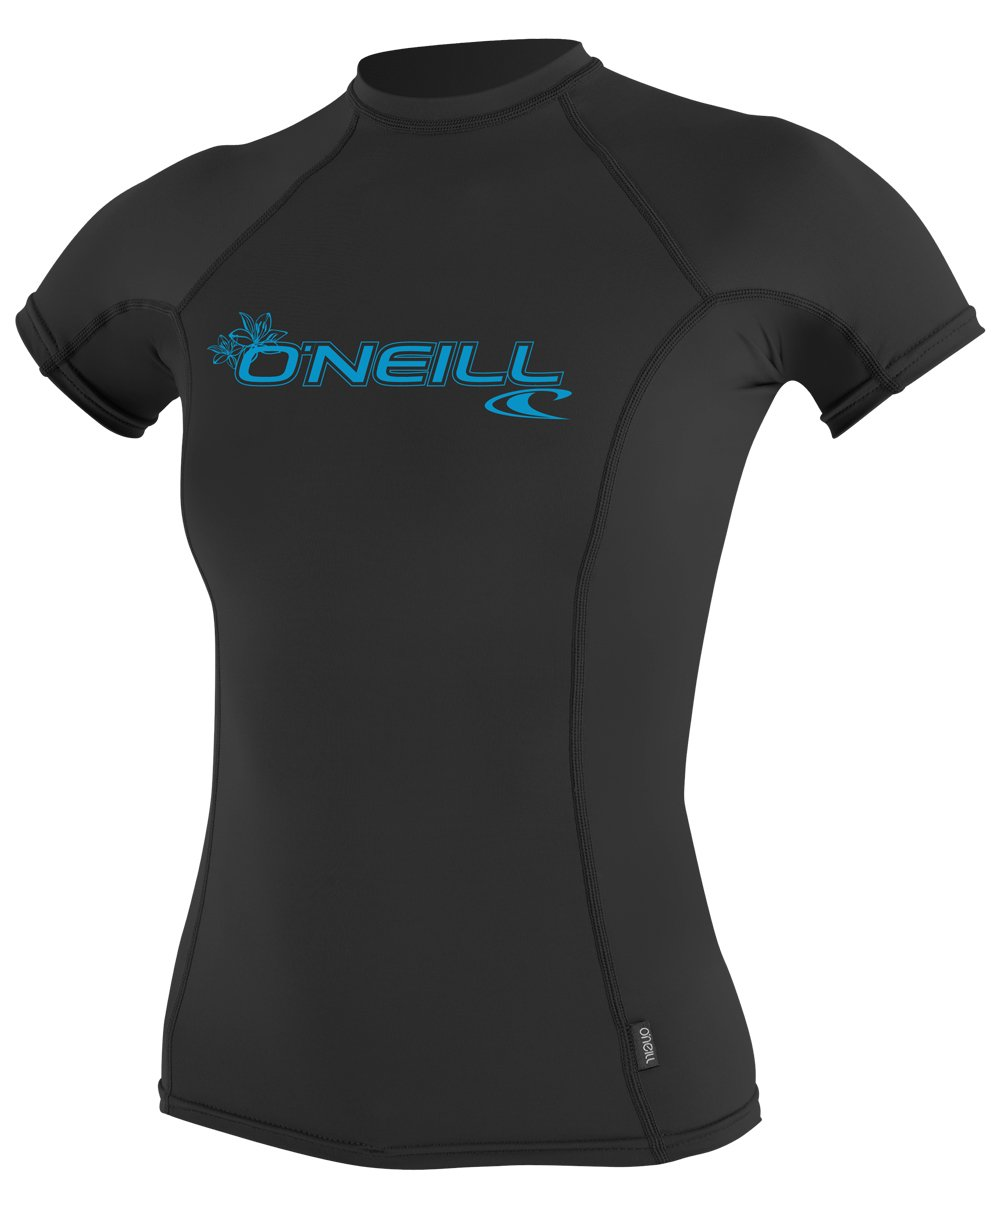 O'Neill Women's Basic 50+ Skins Short Sleeve Rash Guard, Black, X-Large by O'Neill Wetsuits